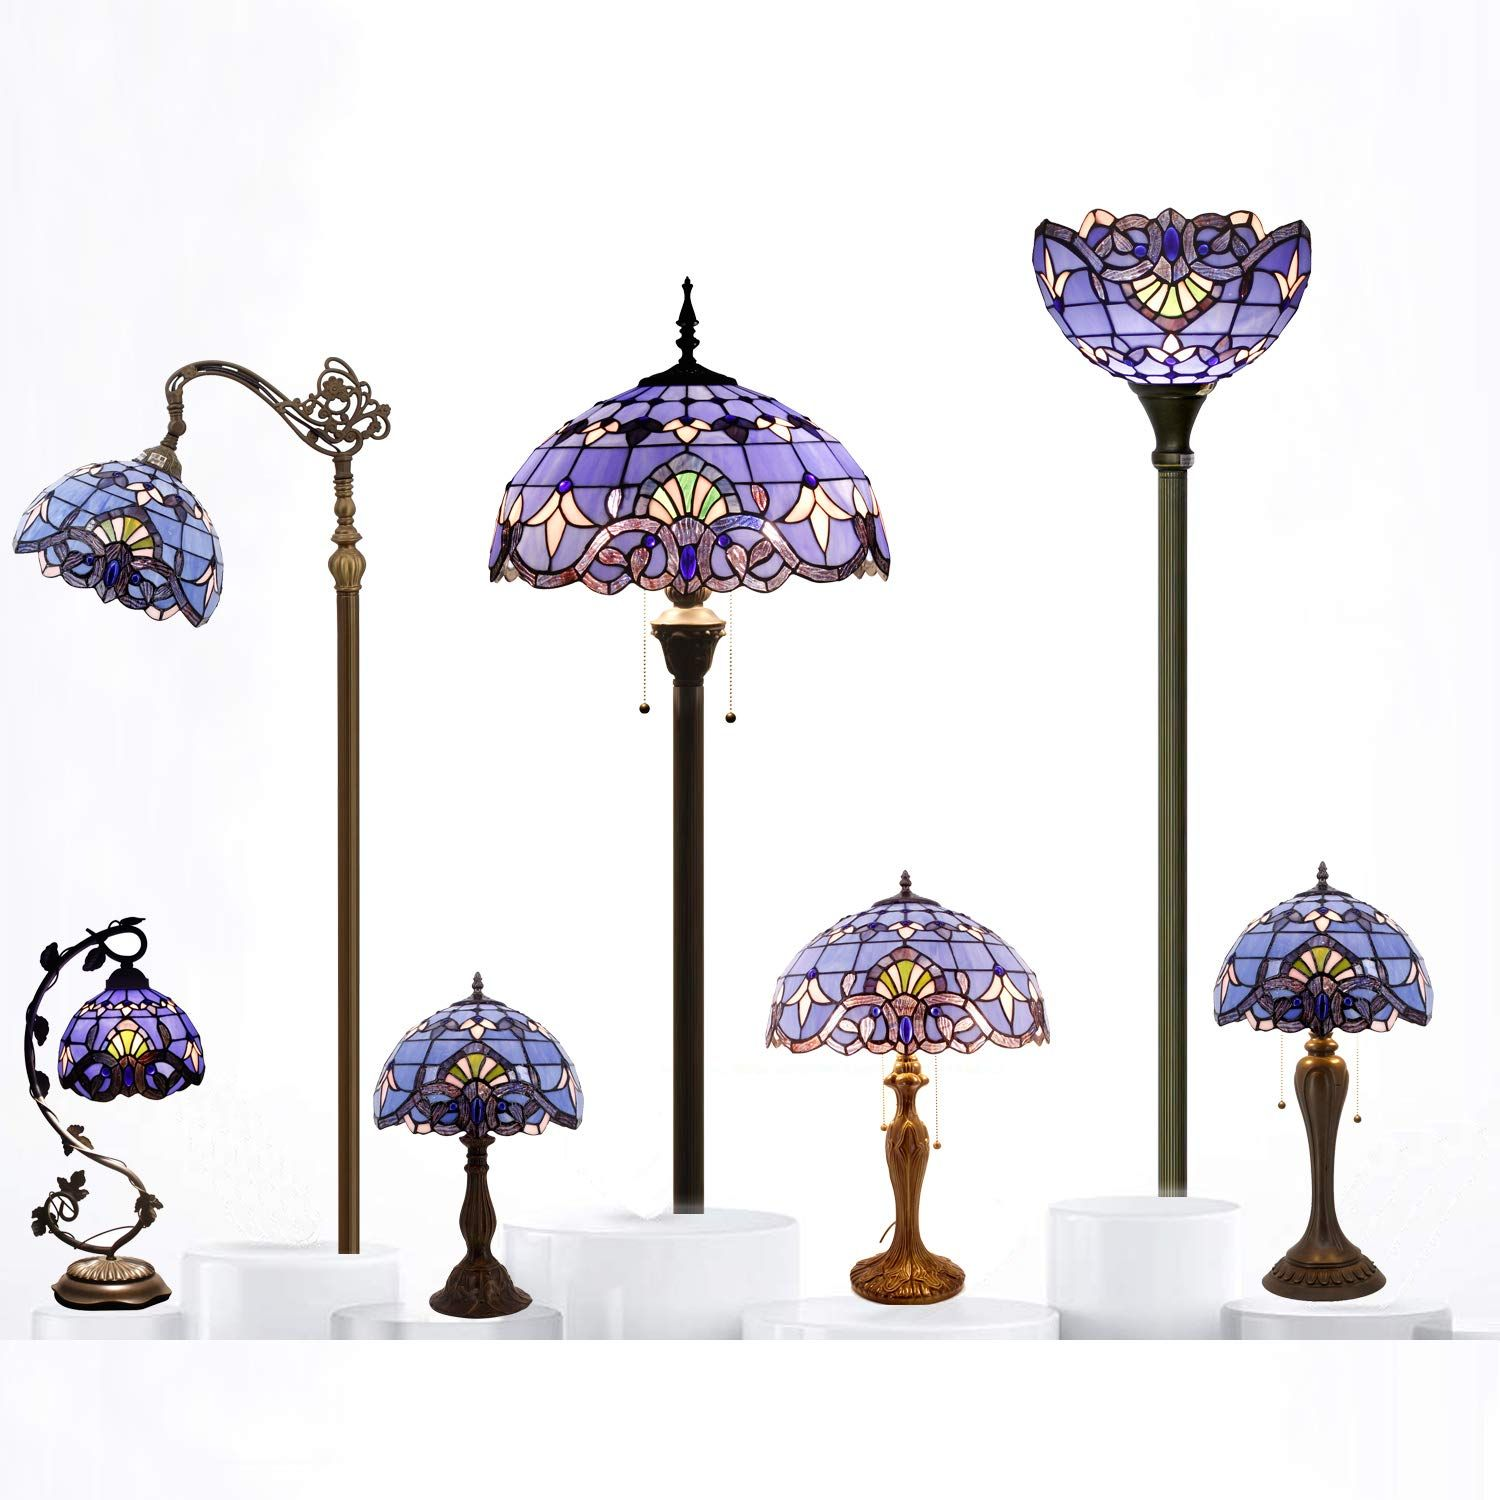 Tiffany Lamp Lavender Table Werfactory In 2020 Glass Desk Lamps Glass Desk Tiffany Lamps